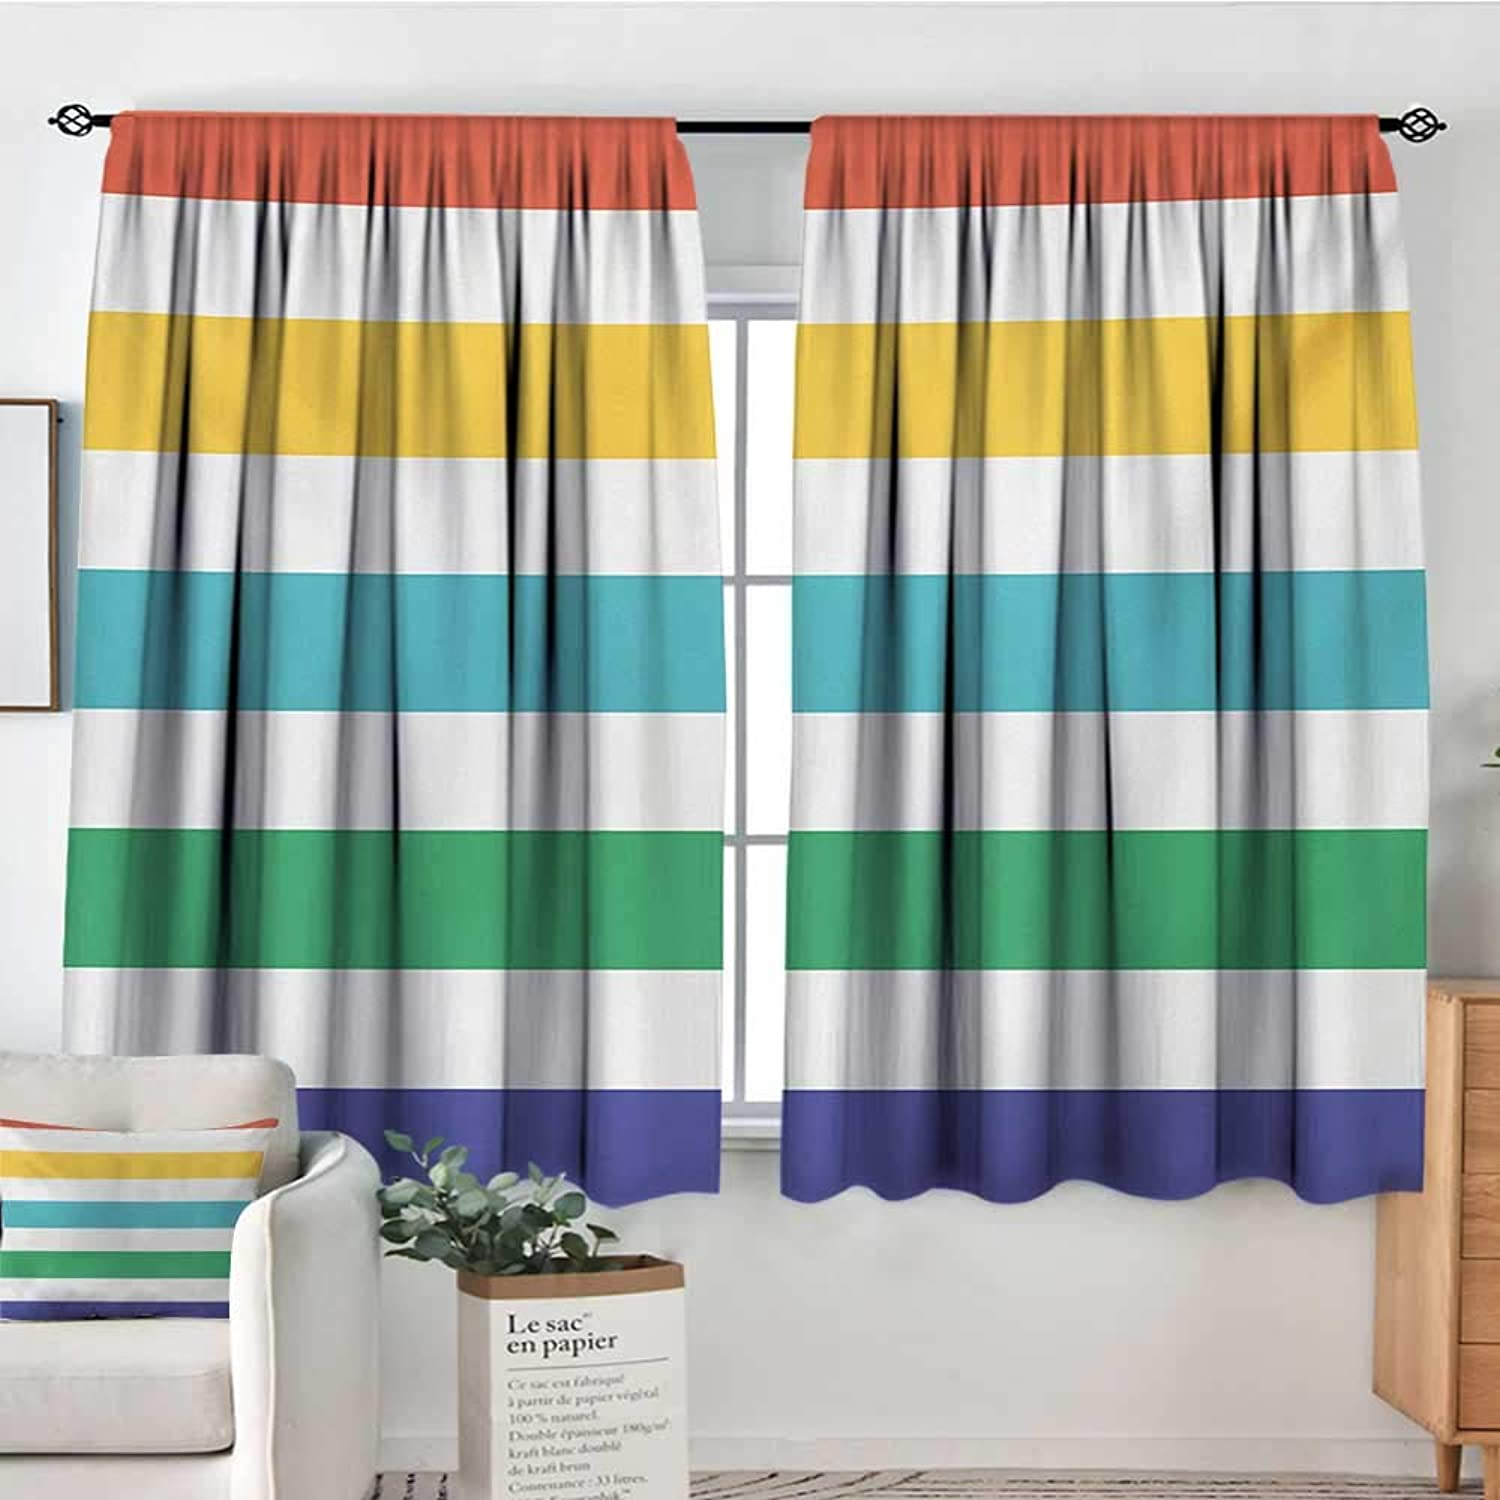 Decor Room Darkening Wide Curtains Striped,Rainbow colord and White Fun Horizontal Lines Kids Room Red Yellow bluee Green Art,Multicolor,Insulating Room Darkening Blackout Drapes 42 x63